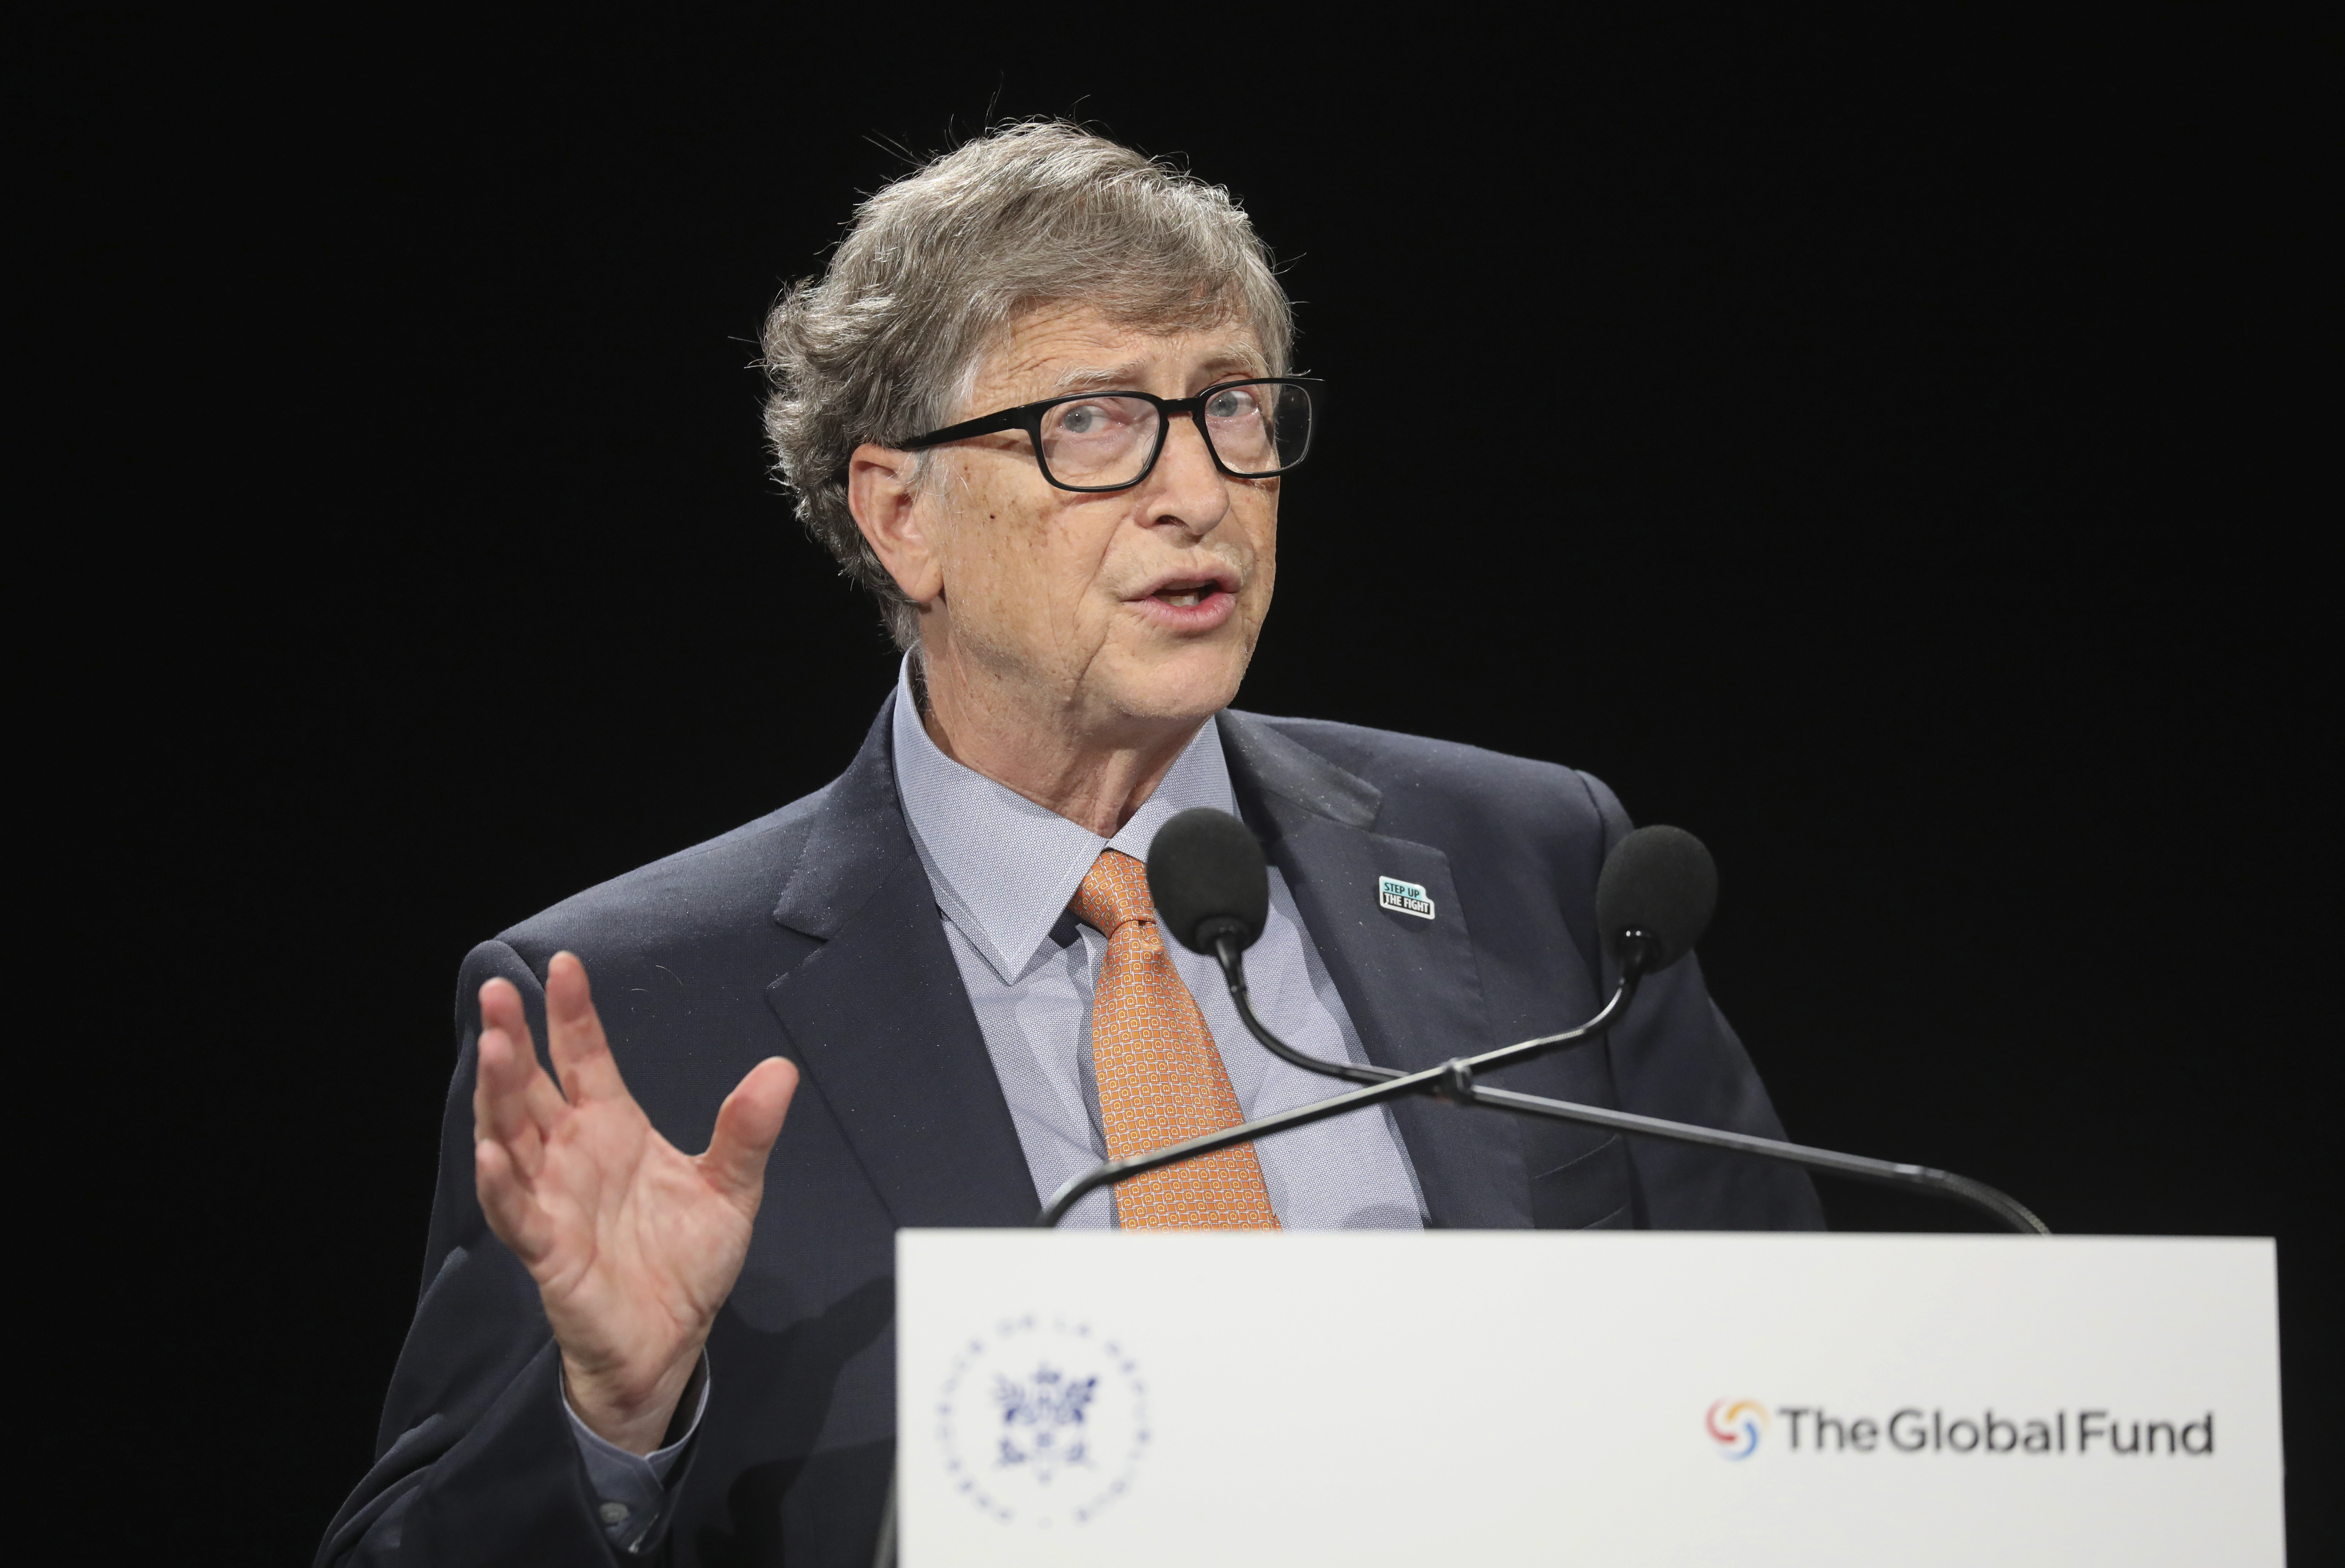 Philanthropist and Co-Chairman of the Bill & Melinda Gates Foundation Bill Gates gestures as he speaks to the audience during the Global Fund to Fight AIDS event at the Lyon's congress hall, central France.